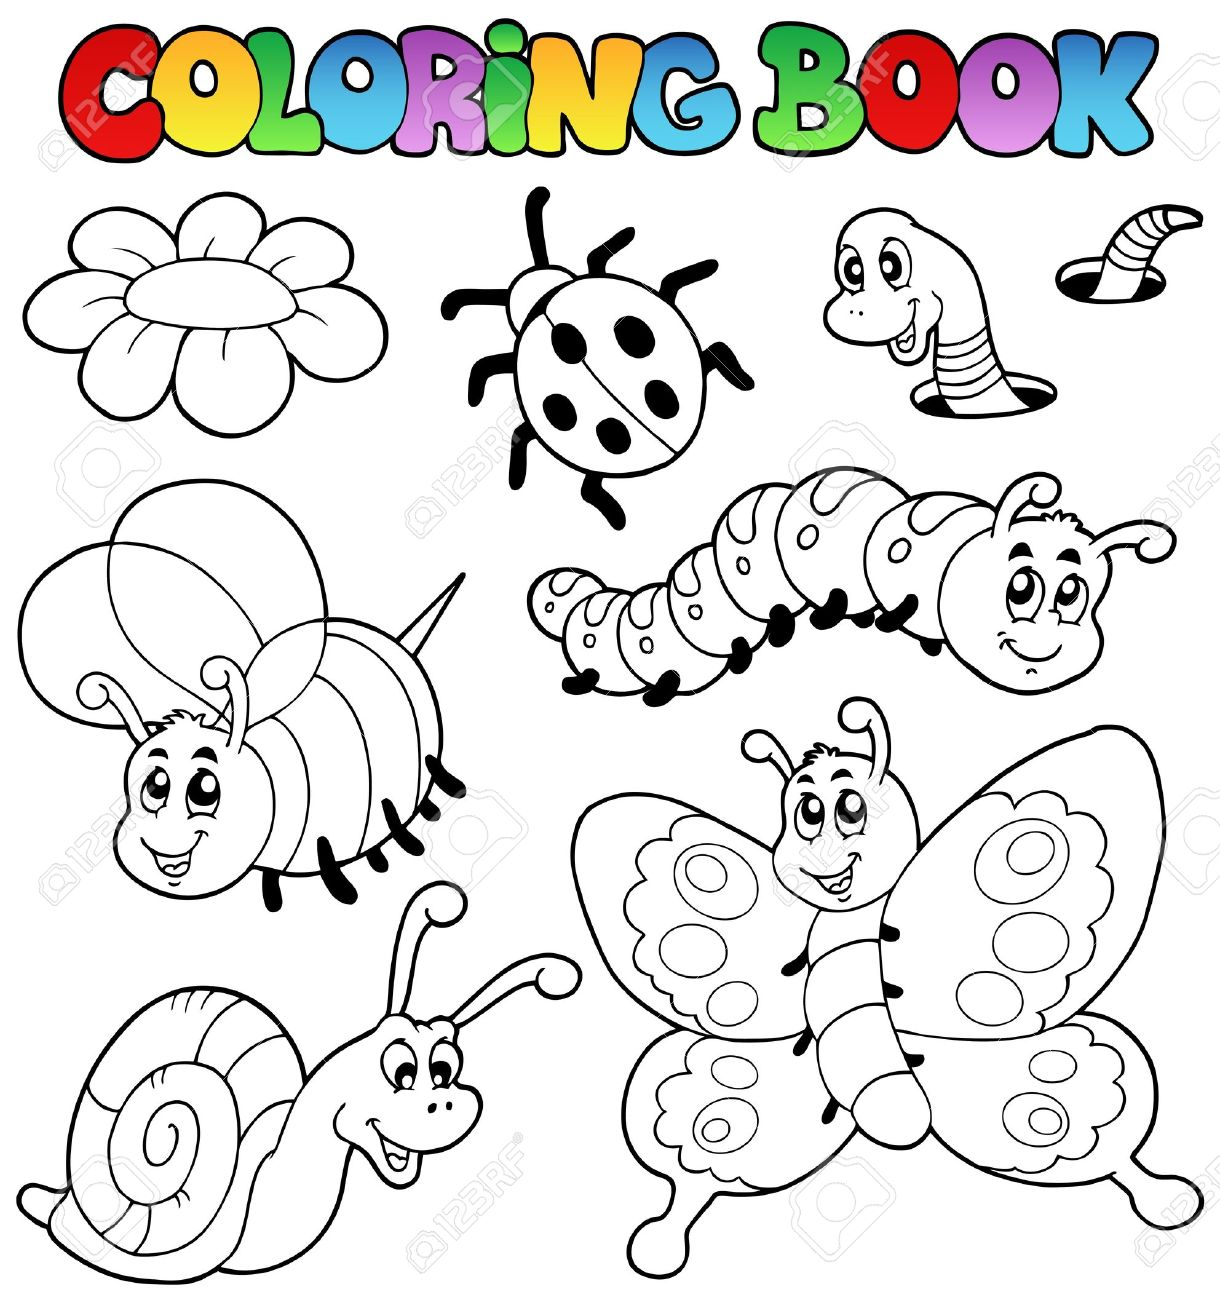 Coloring book with guide - Coloring Book With Small Animals 2 Vector Illustration Stock Vector 9443073